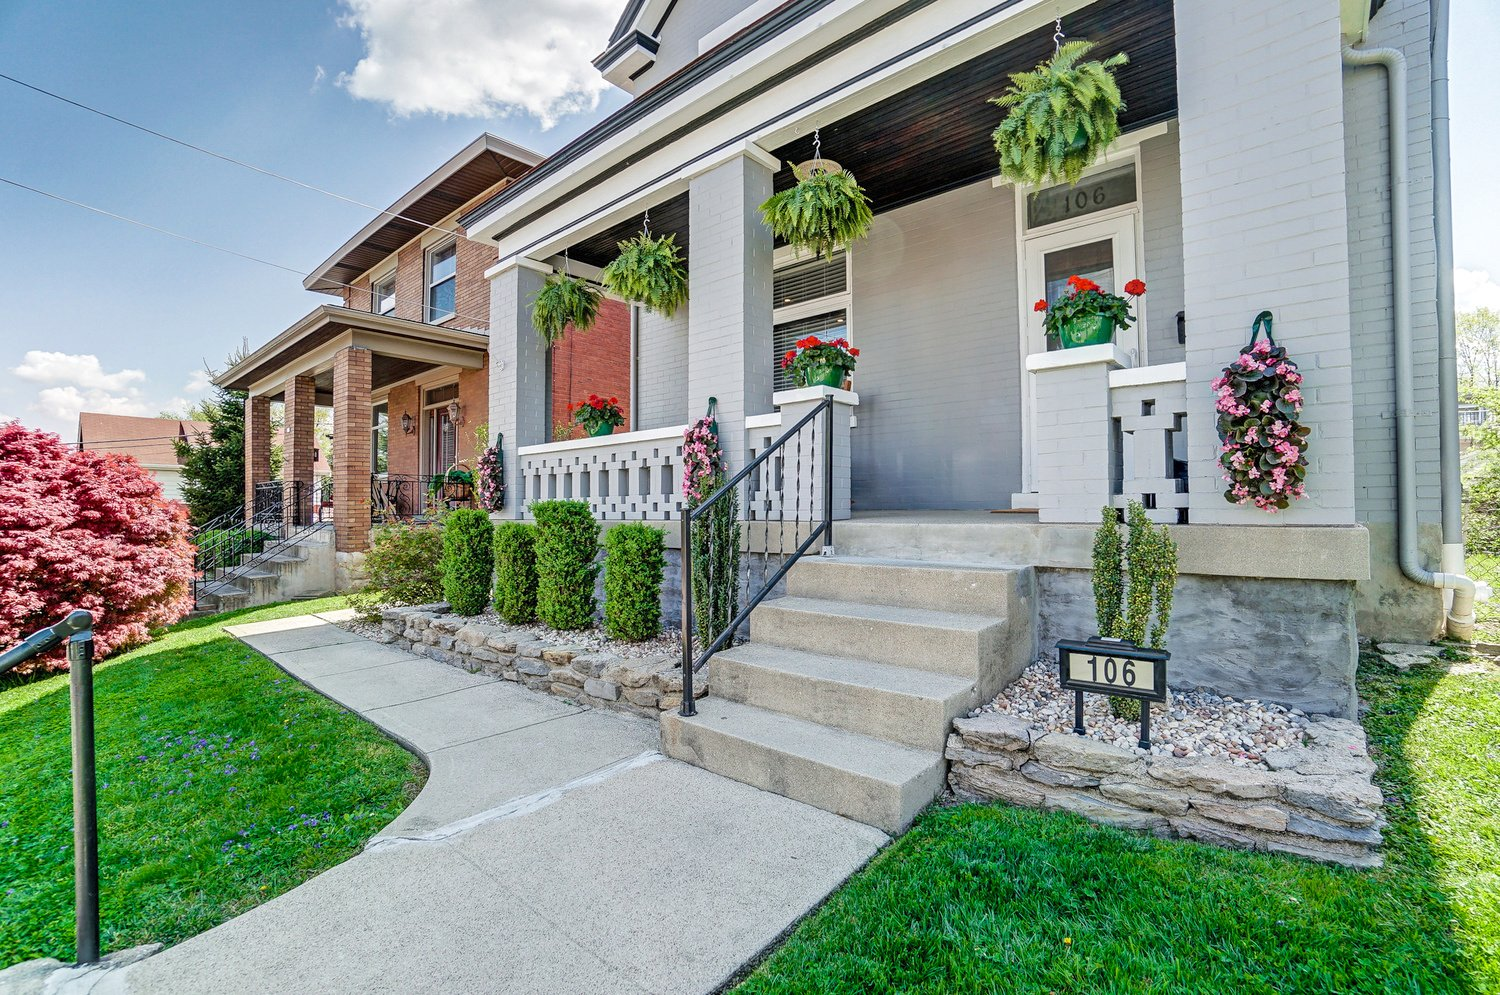 Home for Sale in Newport!